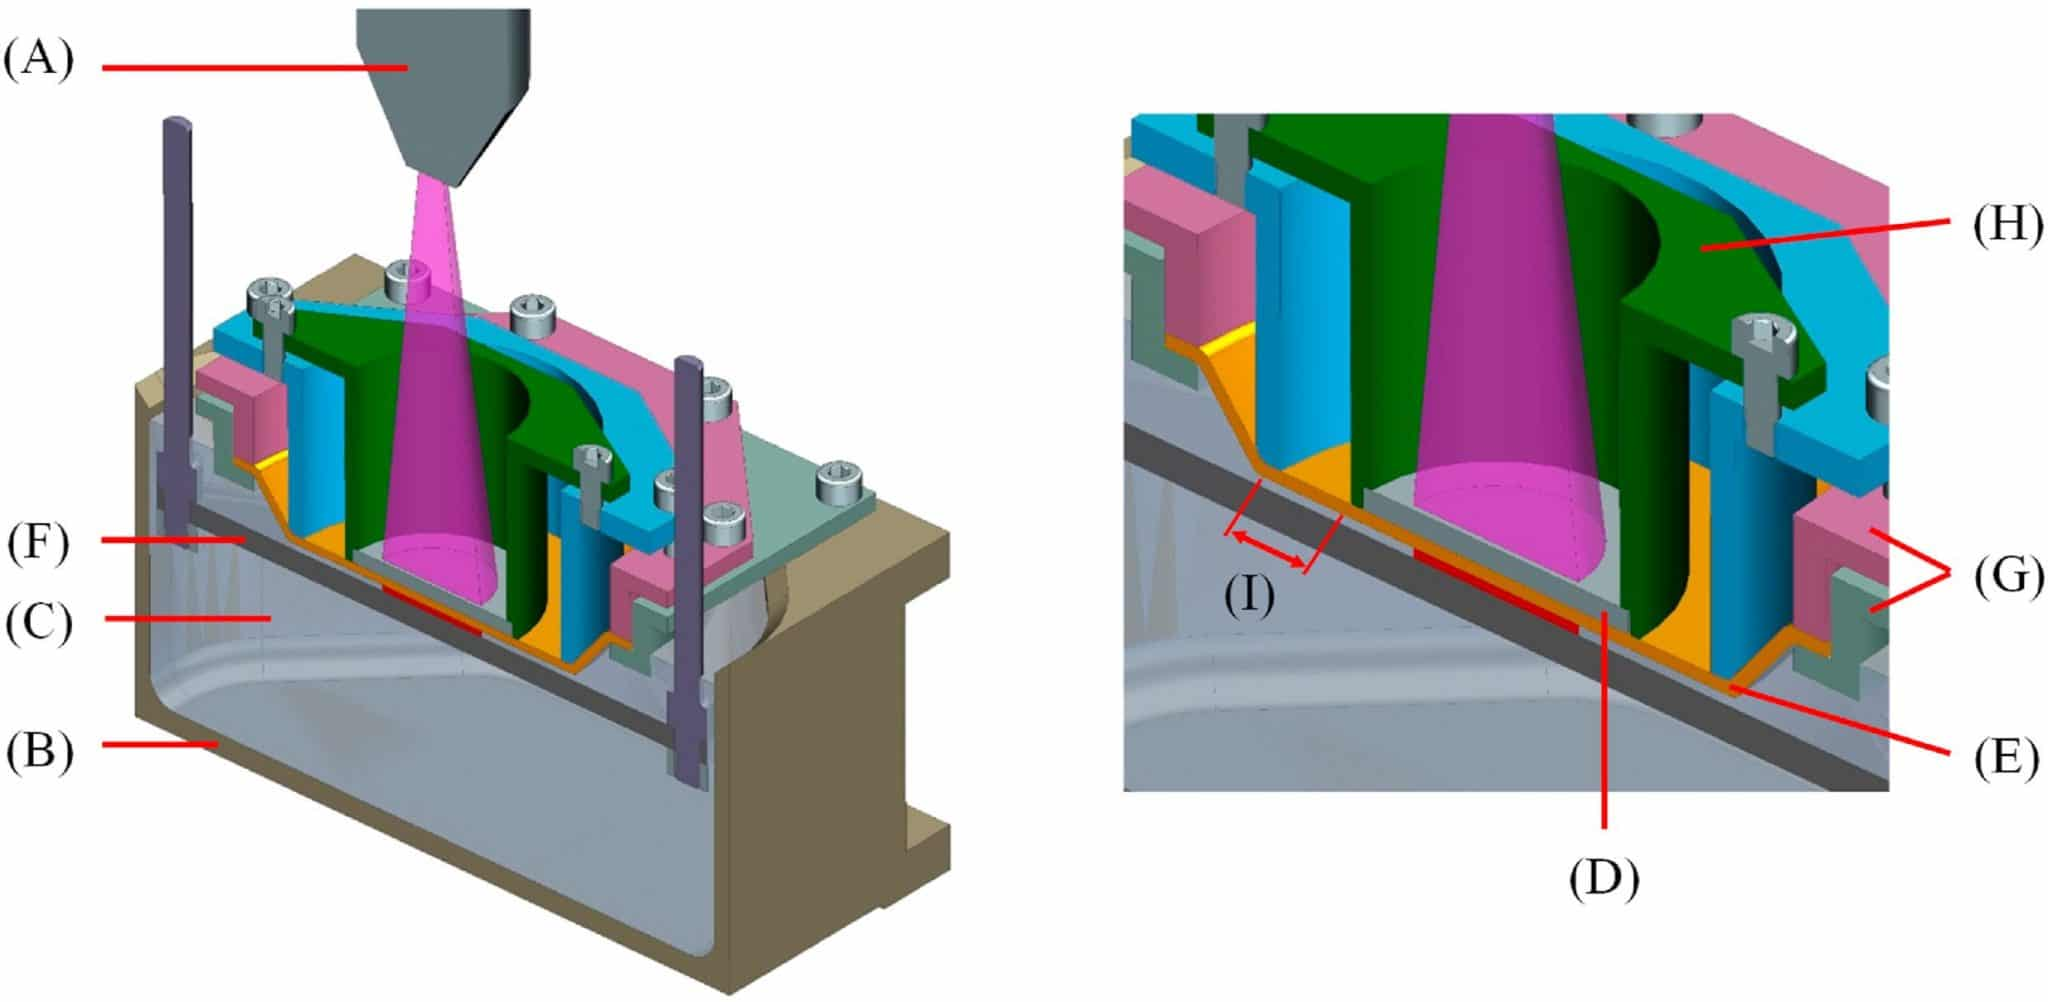 MEMTi researchers propose novel top-down stereolithography method for ceramics